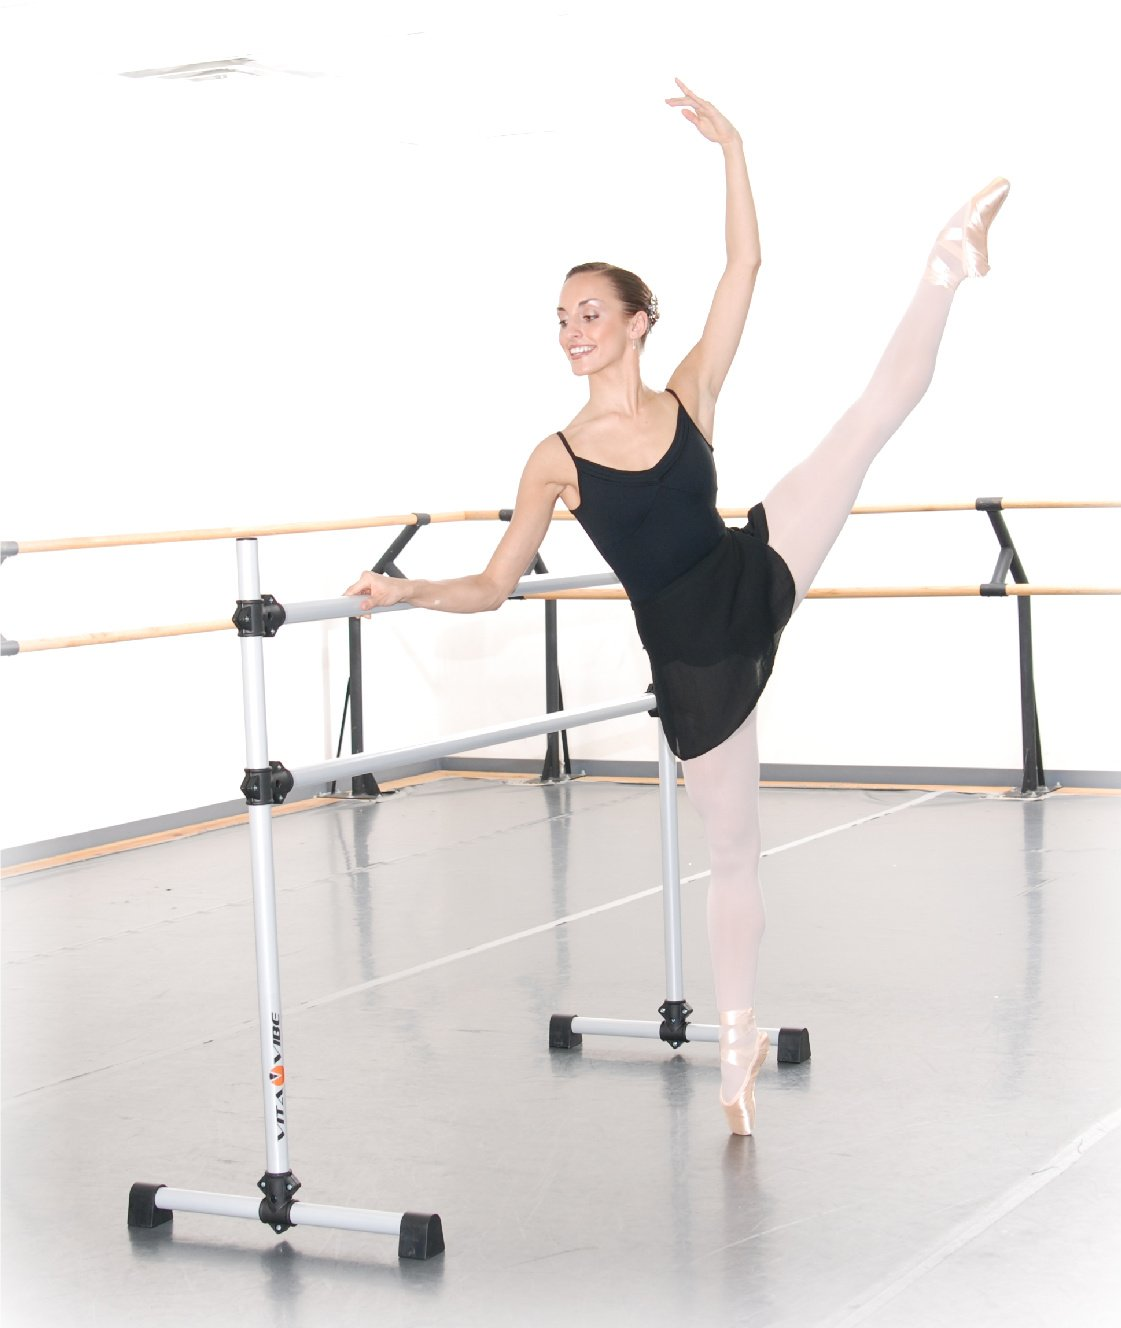 Vita Vibe BD60 Prodigy Series Portable Double Freestanding Ballet Barre, Stretch/Dance Bar, 5-Feet